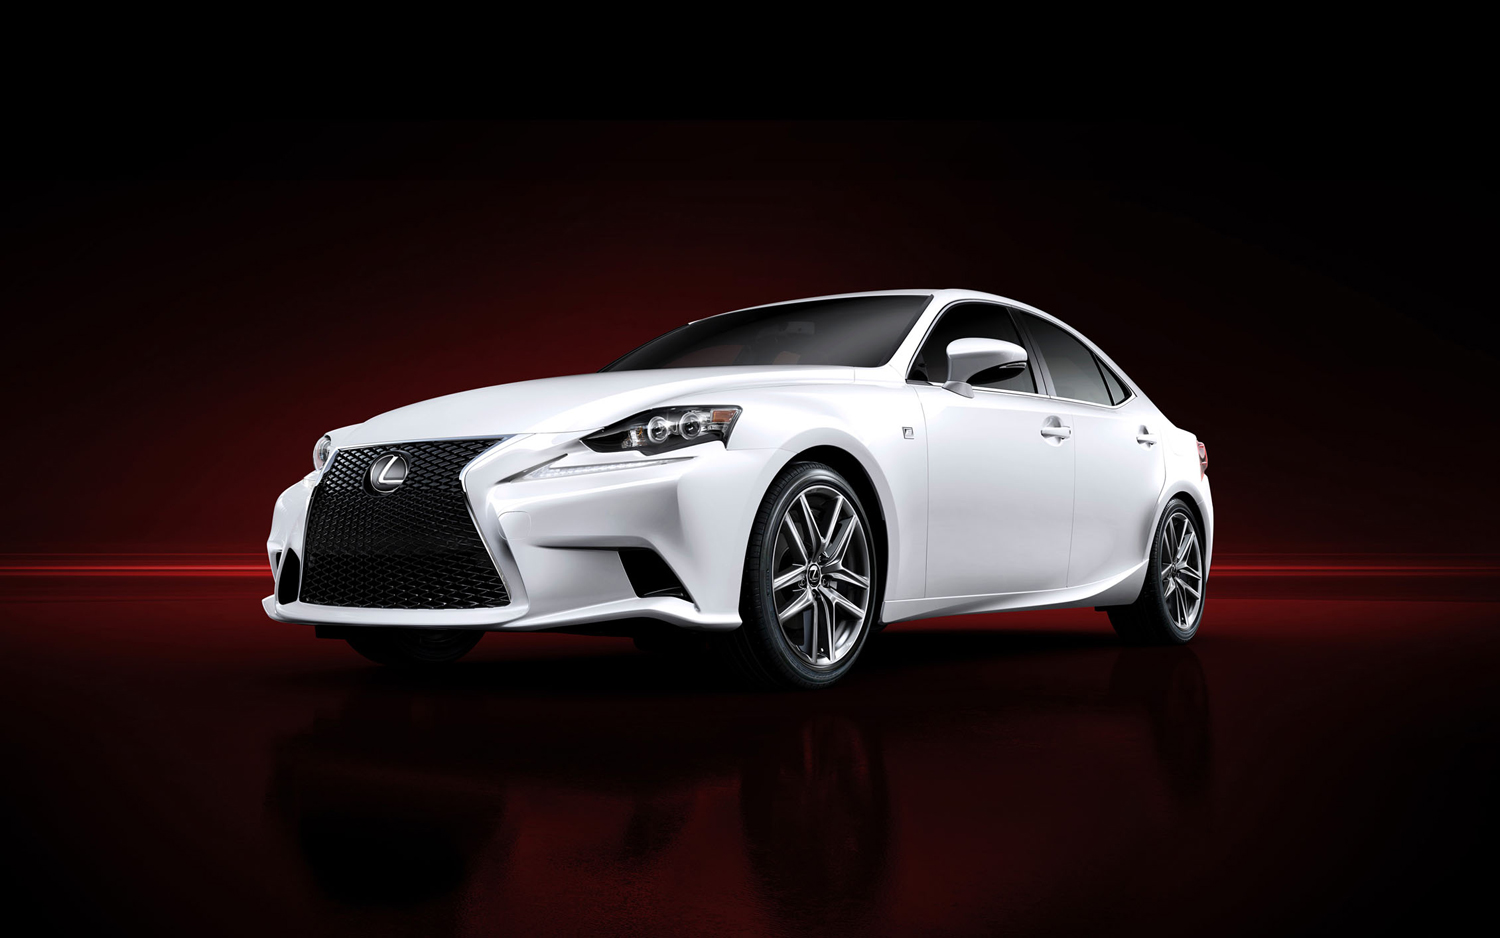 2014 Lexus IS F Sport 1 2014 Lexus IS F Sport